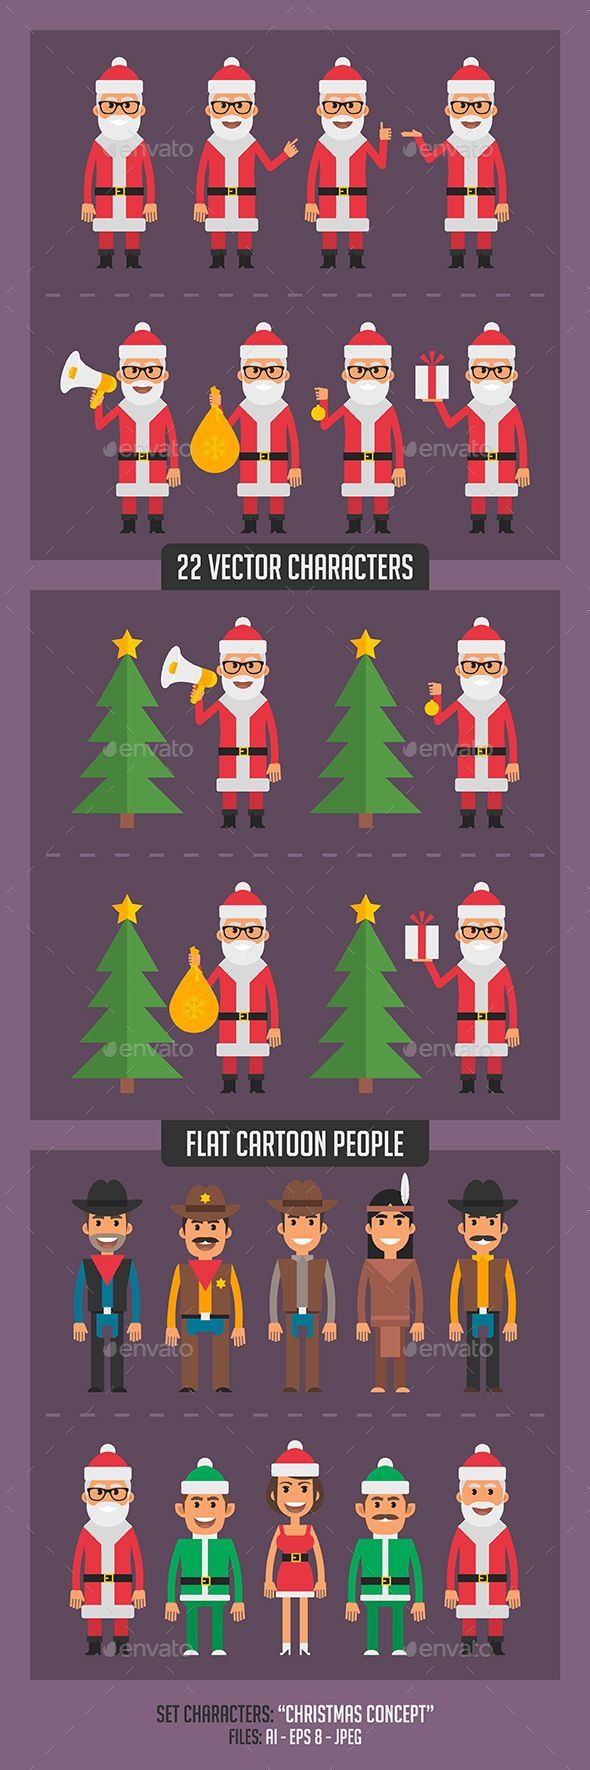 Cartoon Characters Kahoot : Best christmas cartoon characters ideas on pinterest